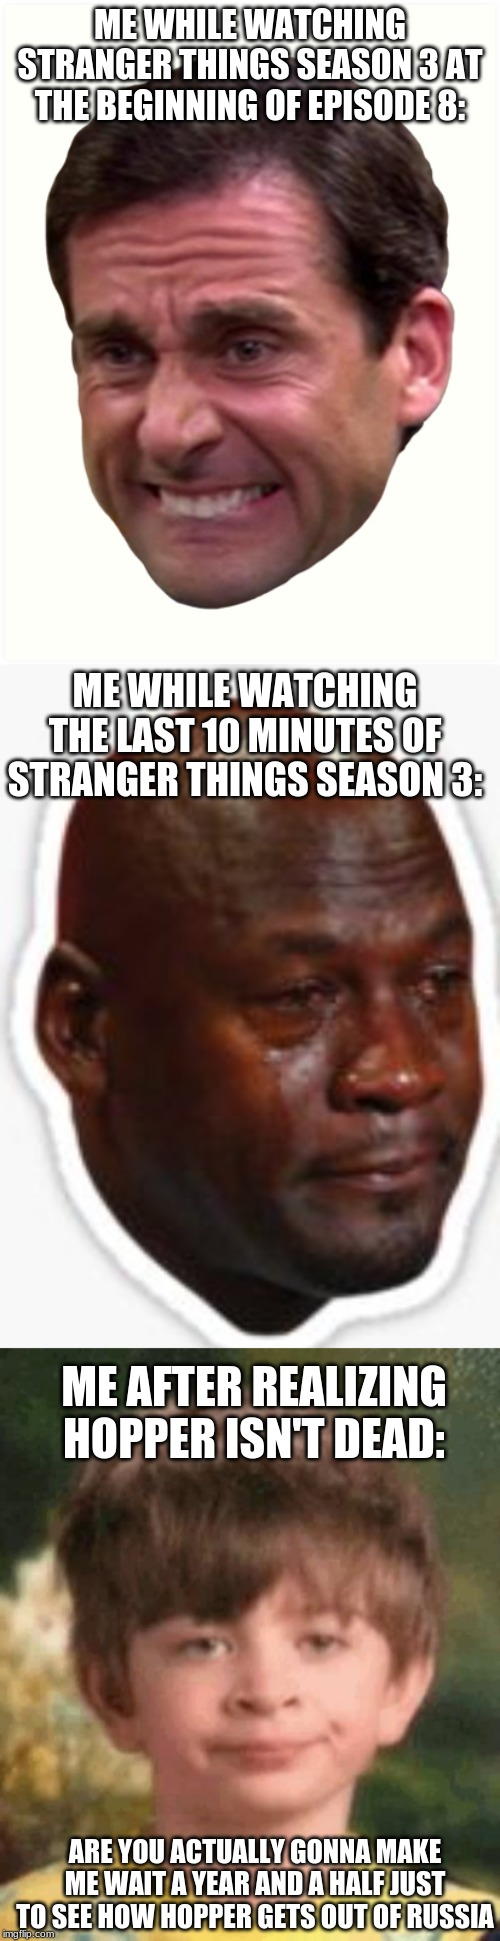 ME WHILE WATCHING STRANGER THINGS SEASON 3 AT THE BEGINNING OF EPISODE 8: ME WHILE WATCHING THE LAST 10 MINUTES OF STRANGER THINGS SEASON 3: | image tagged in stranger things,annoyed,scared,sad,are you kidding me,memes | made w/ Imgflip meme maker